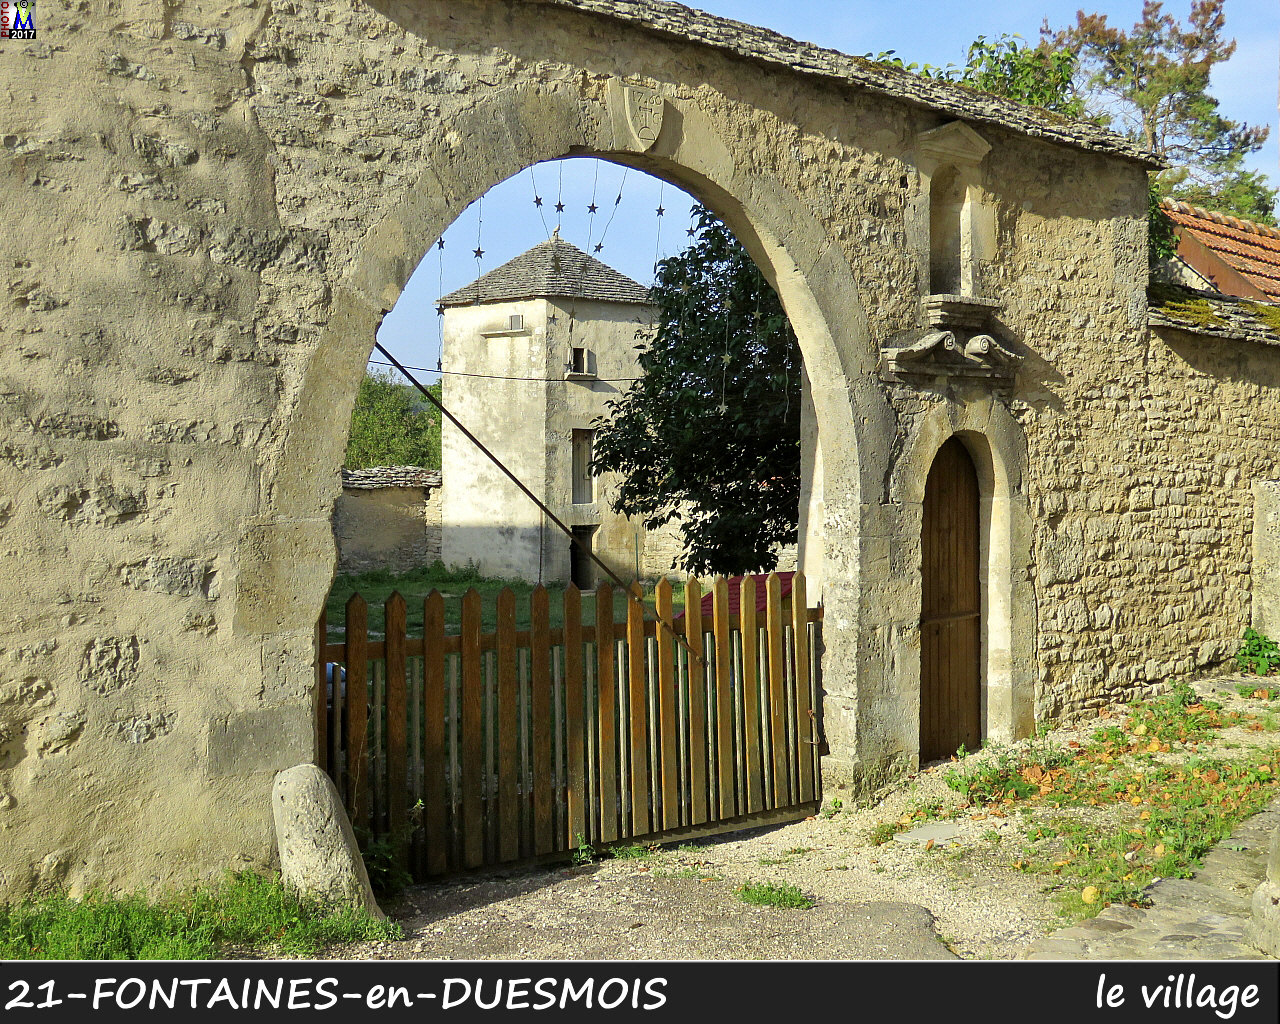 21FONTAINES-DUESMOIS_village_102.jpg